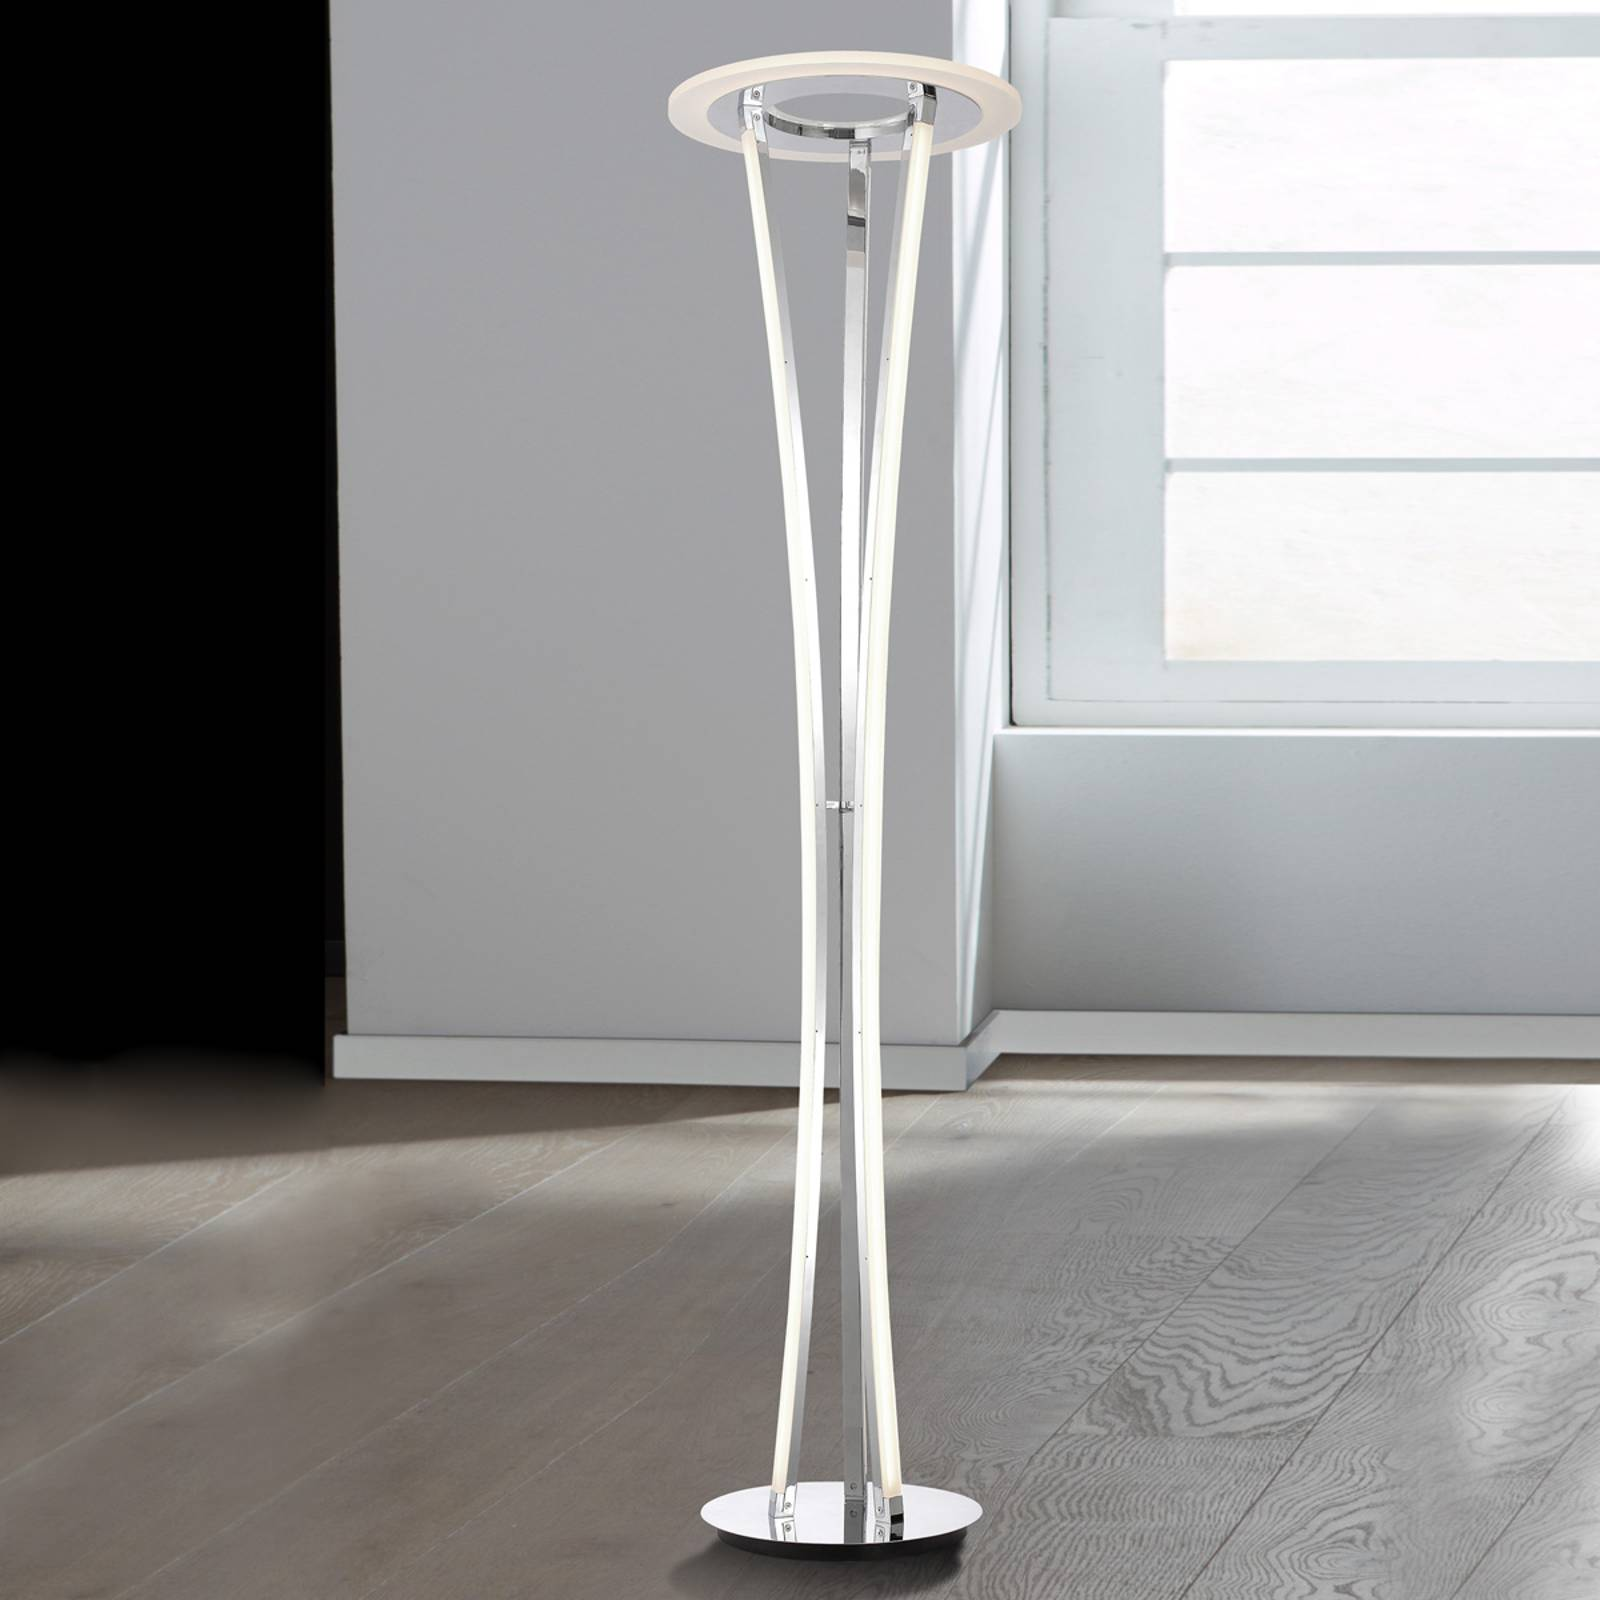 Seattle - beautifully-shaped LED floor lamp from WOFI